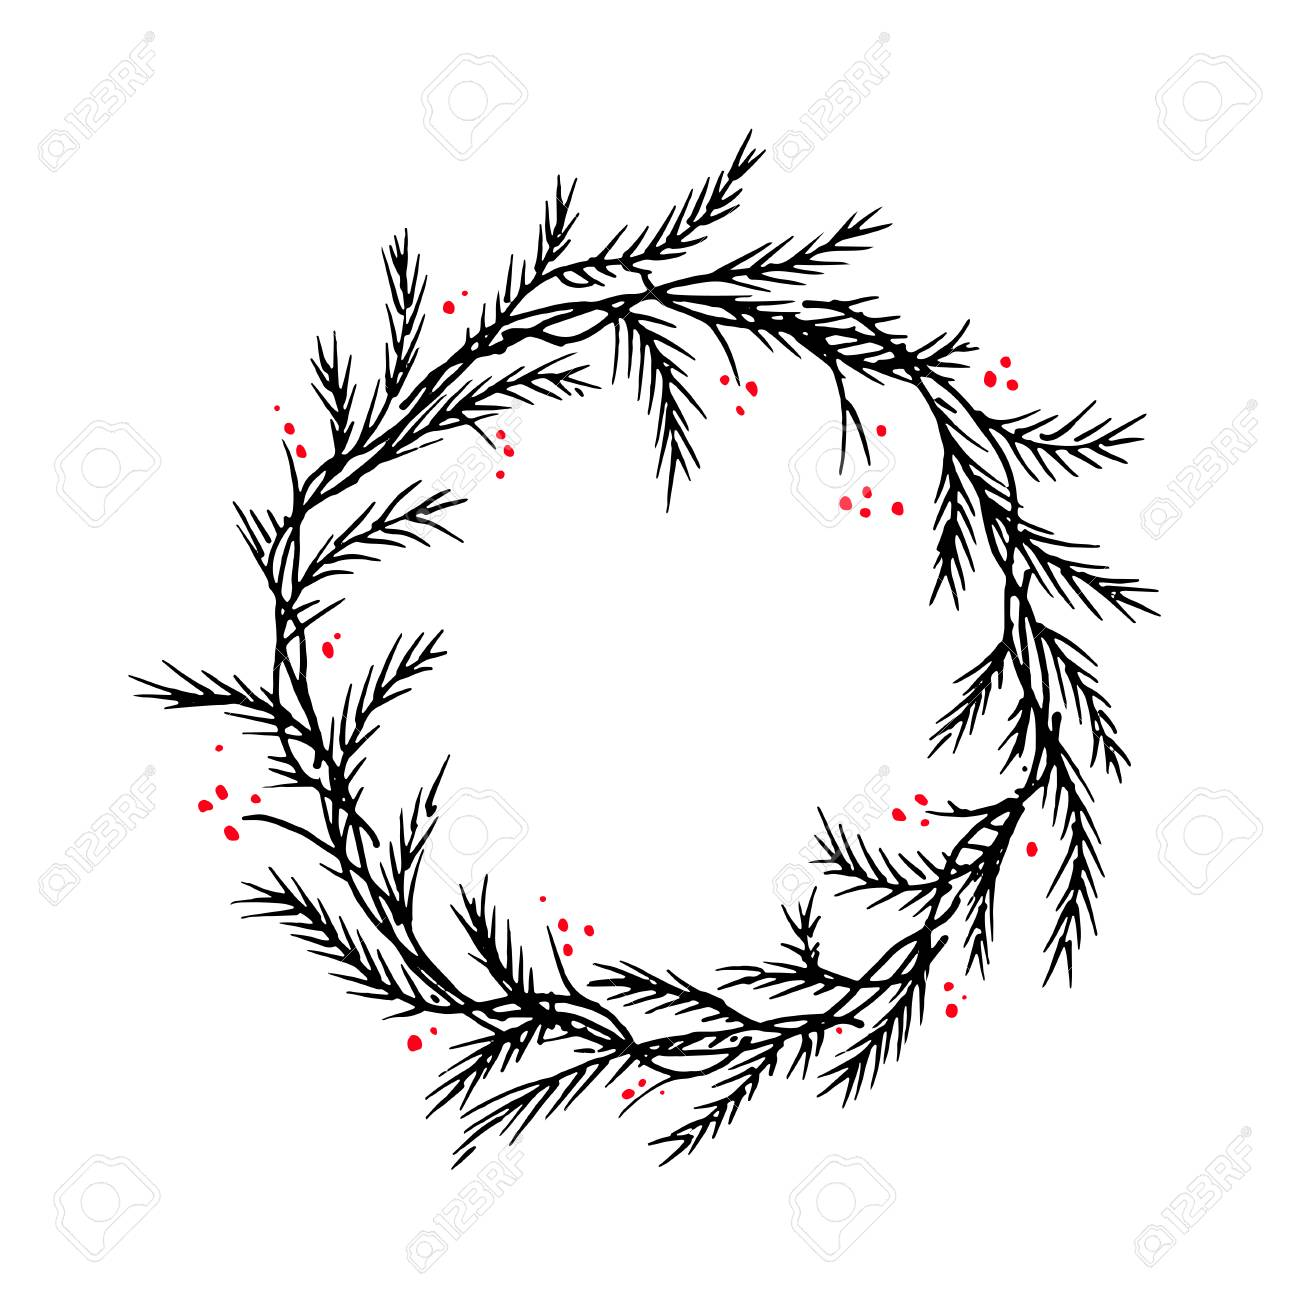 Christmas Wreath Silhouette Vector.Vector Silhouette Christmas Wreath Frame Or Border